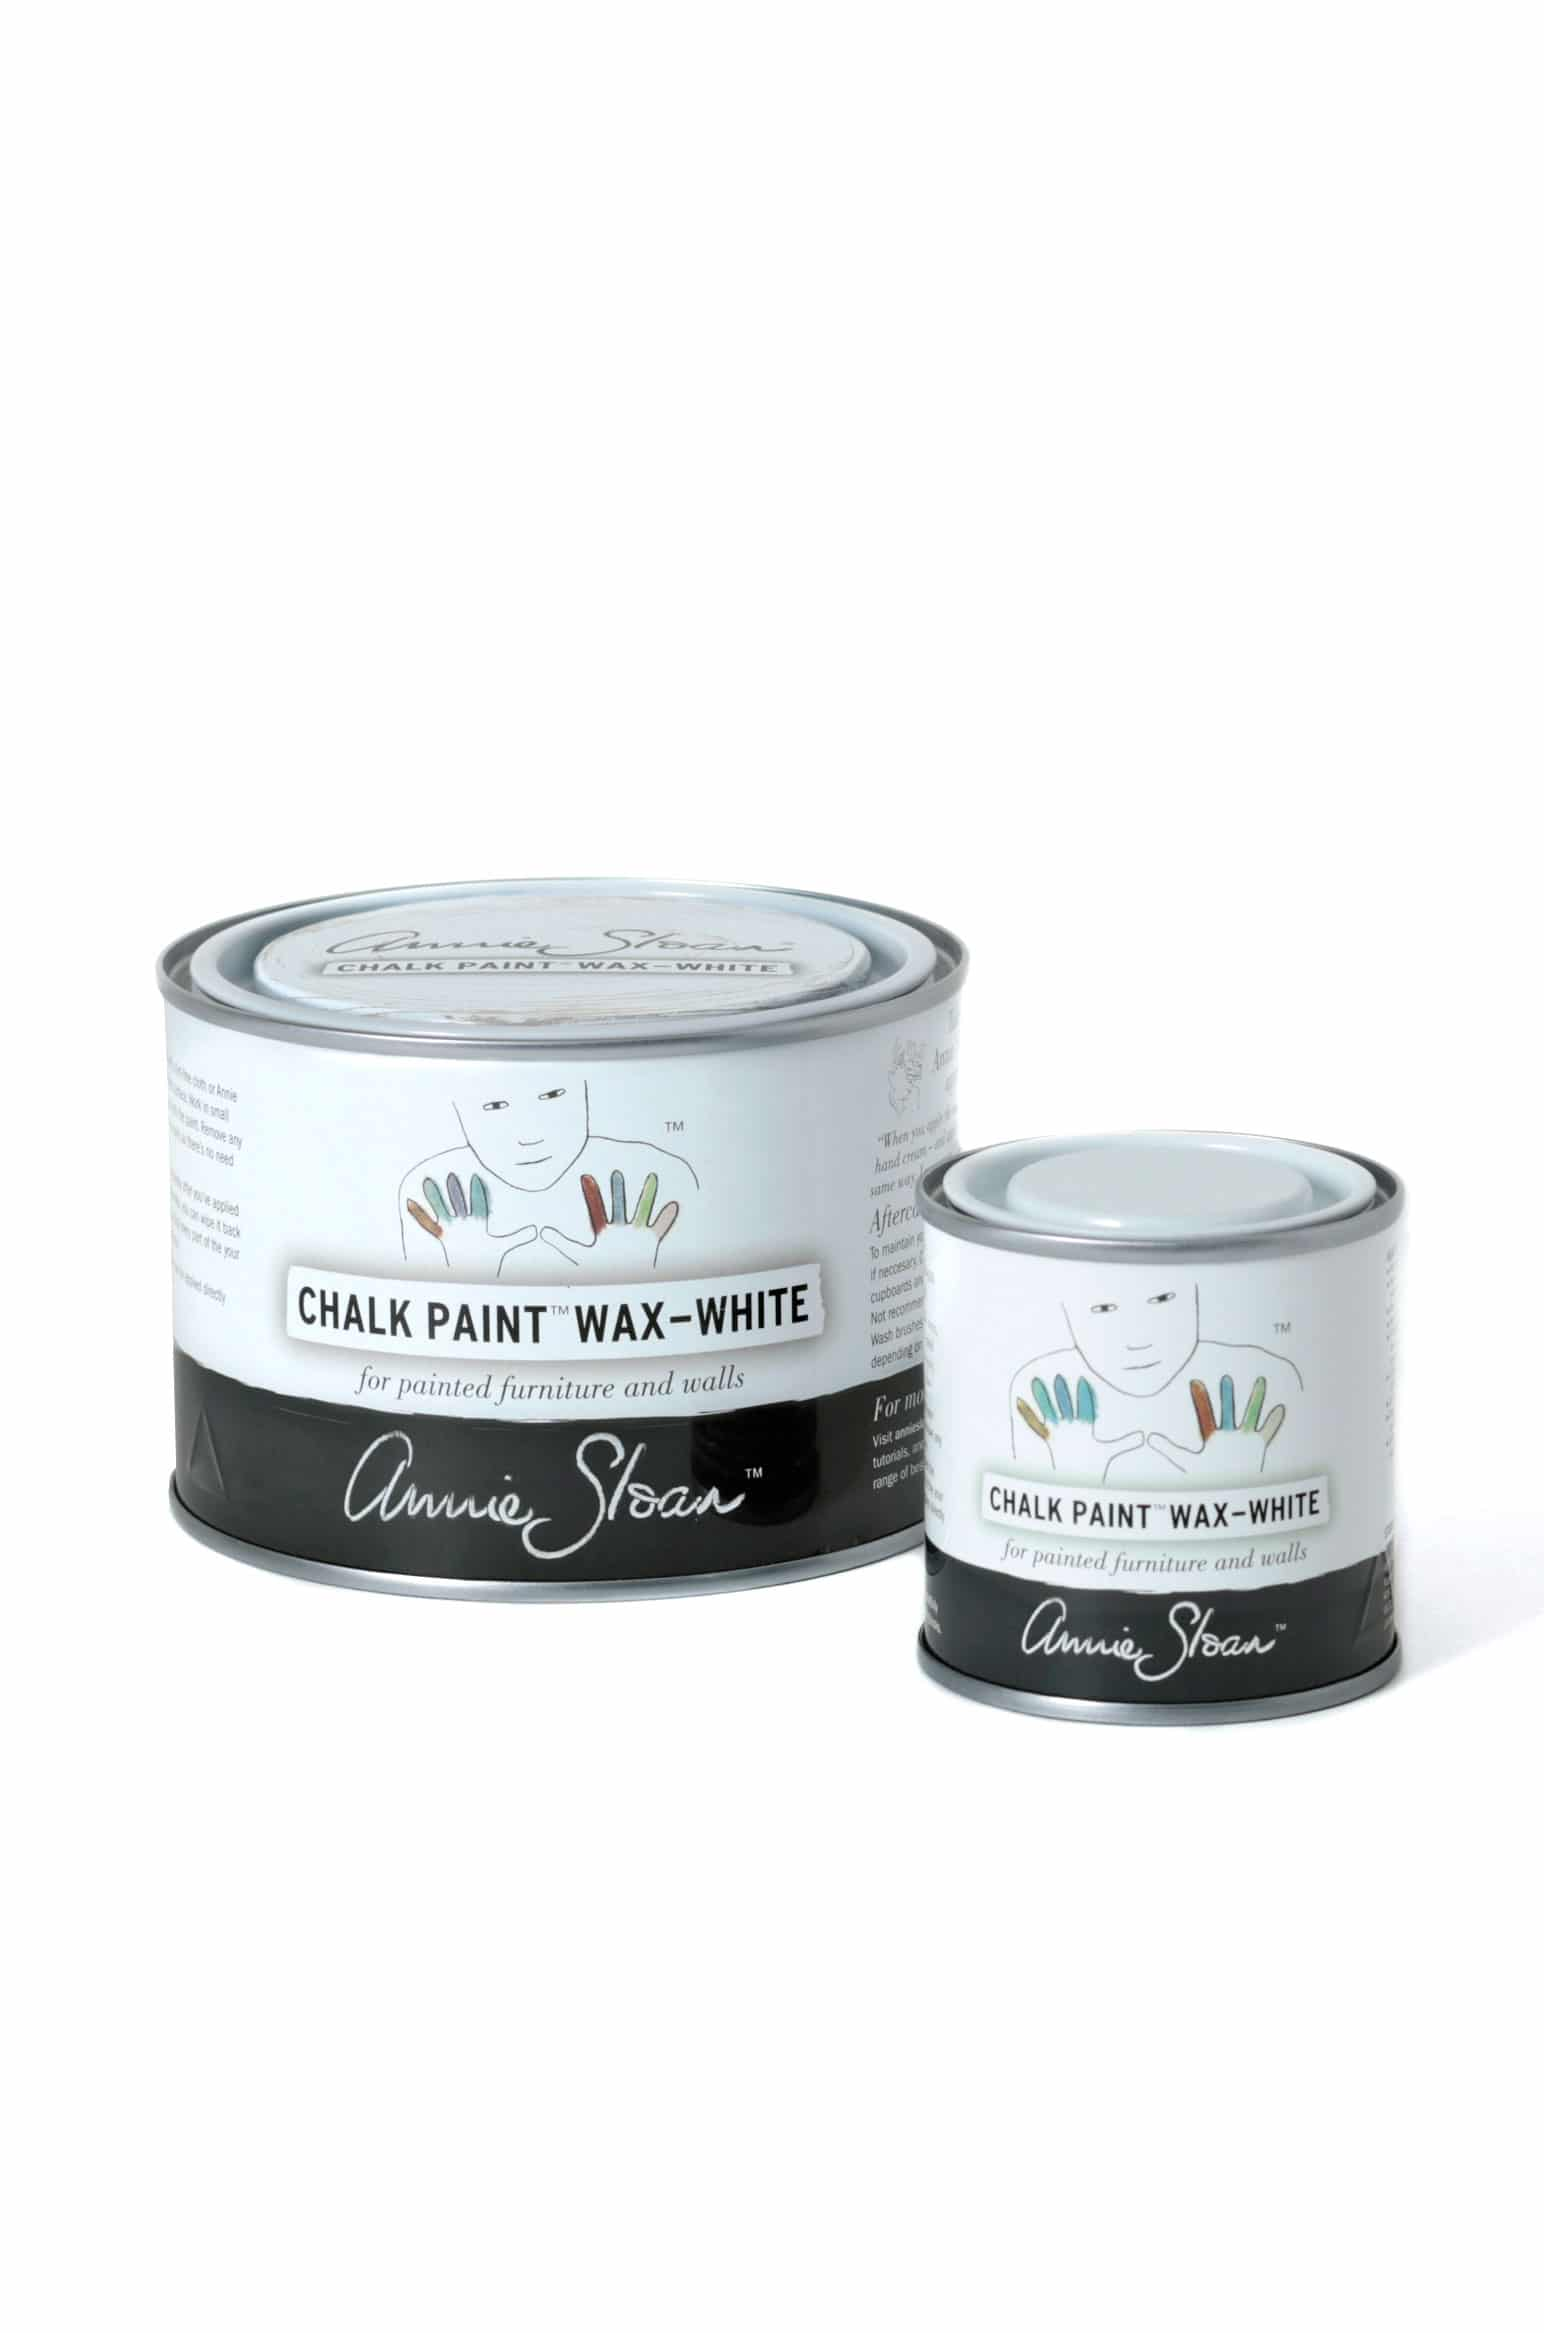 annie sloan chalkpaint in wien. Black Bedroom Furniture Sets. Home Design Ideas